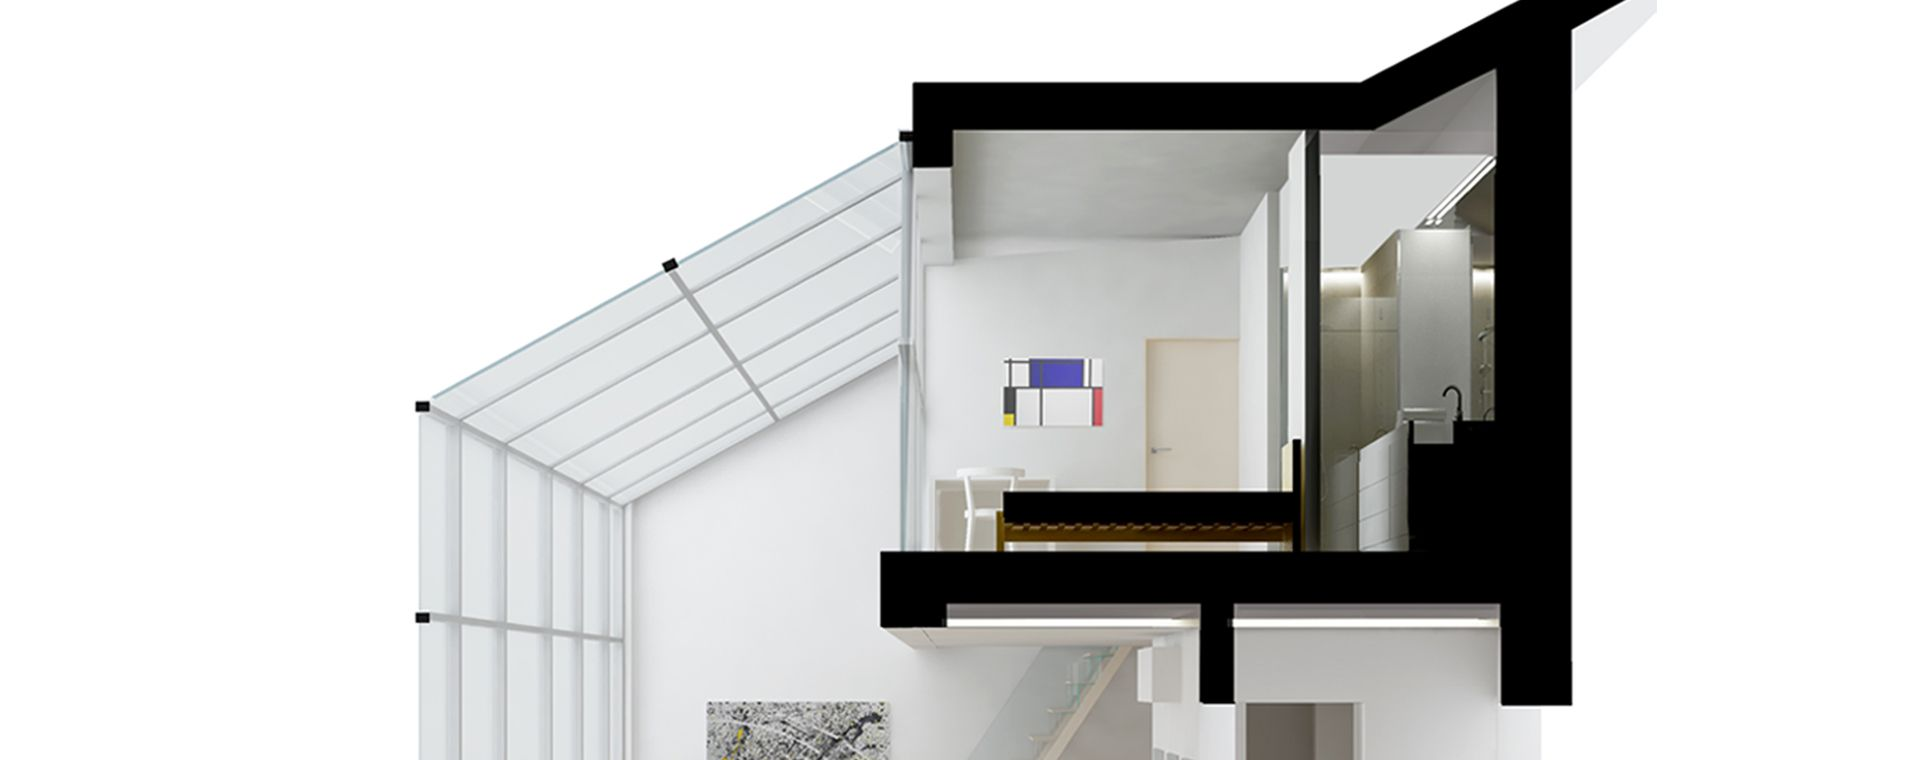 Duplex project renovation /maisonette / mezonet and realization, Na Kopečku 2, Prague 8, 2017-2018, CZ